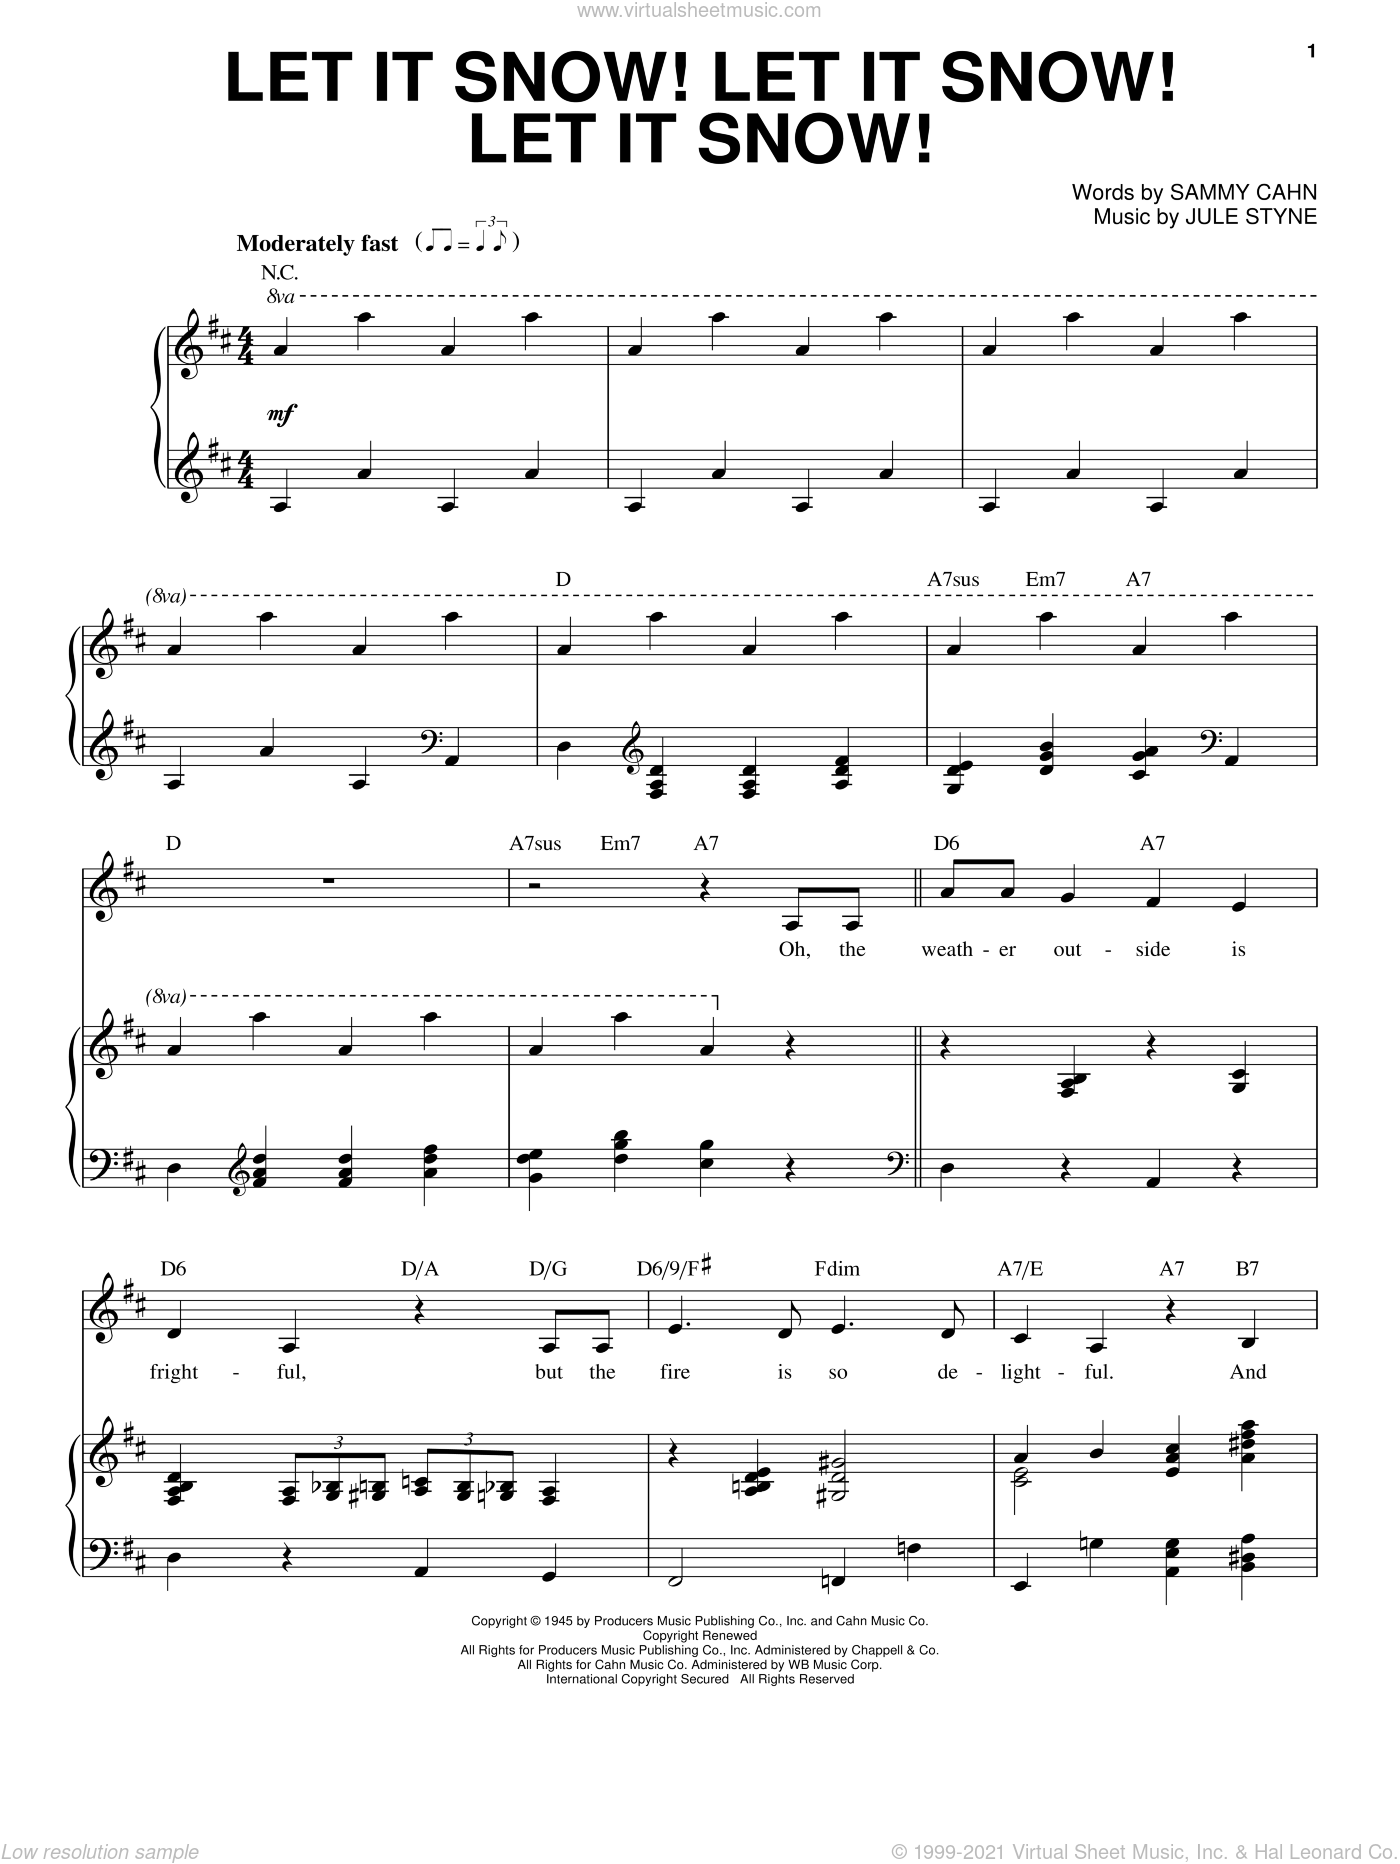 Let It Snow! Let It Snow! Let It Snow! sheet music for voice and piano by Sammy Cahn